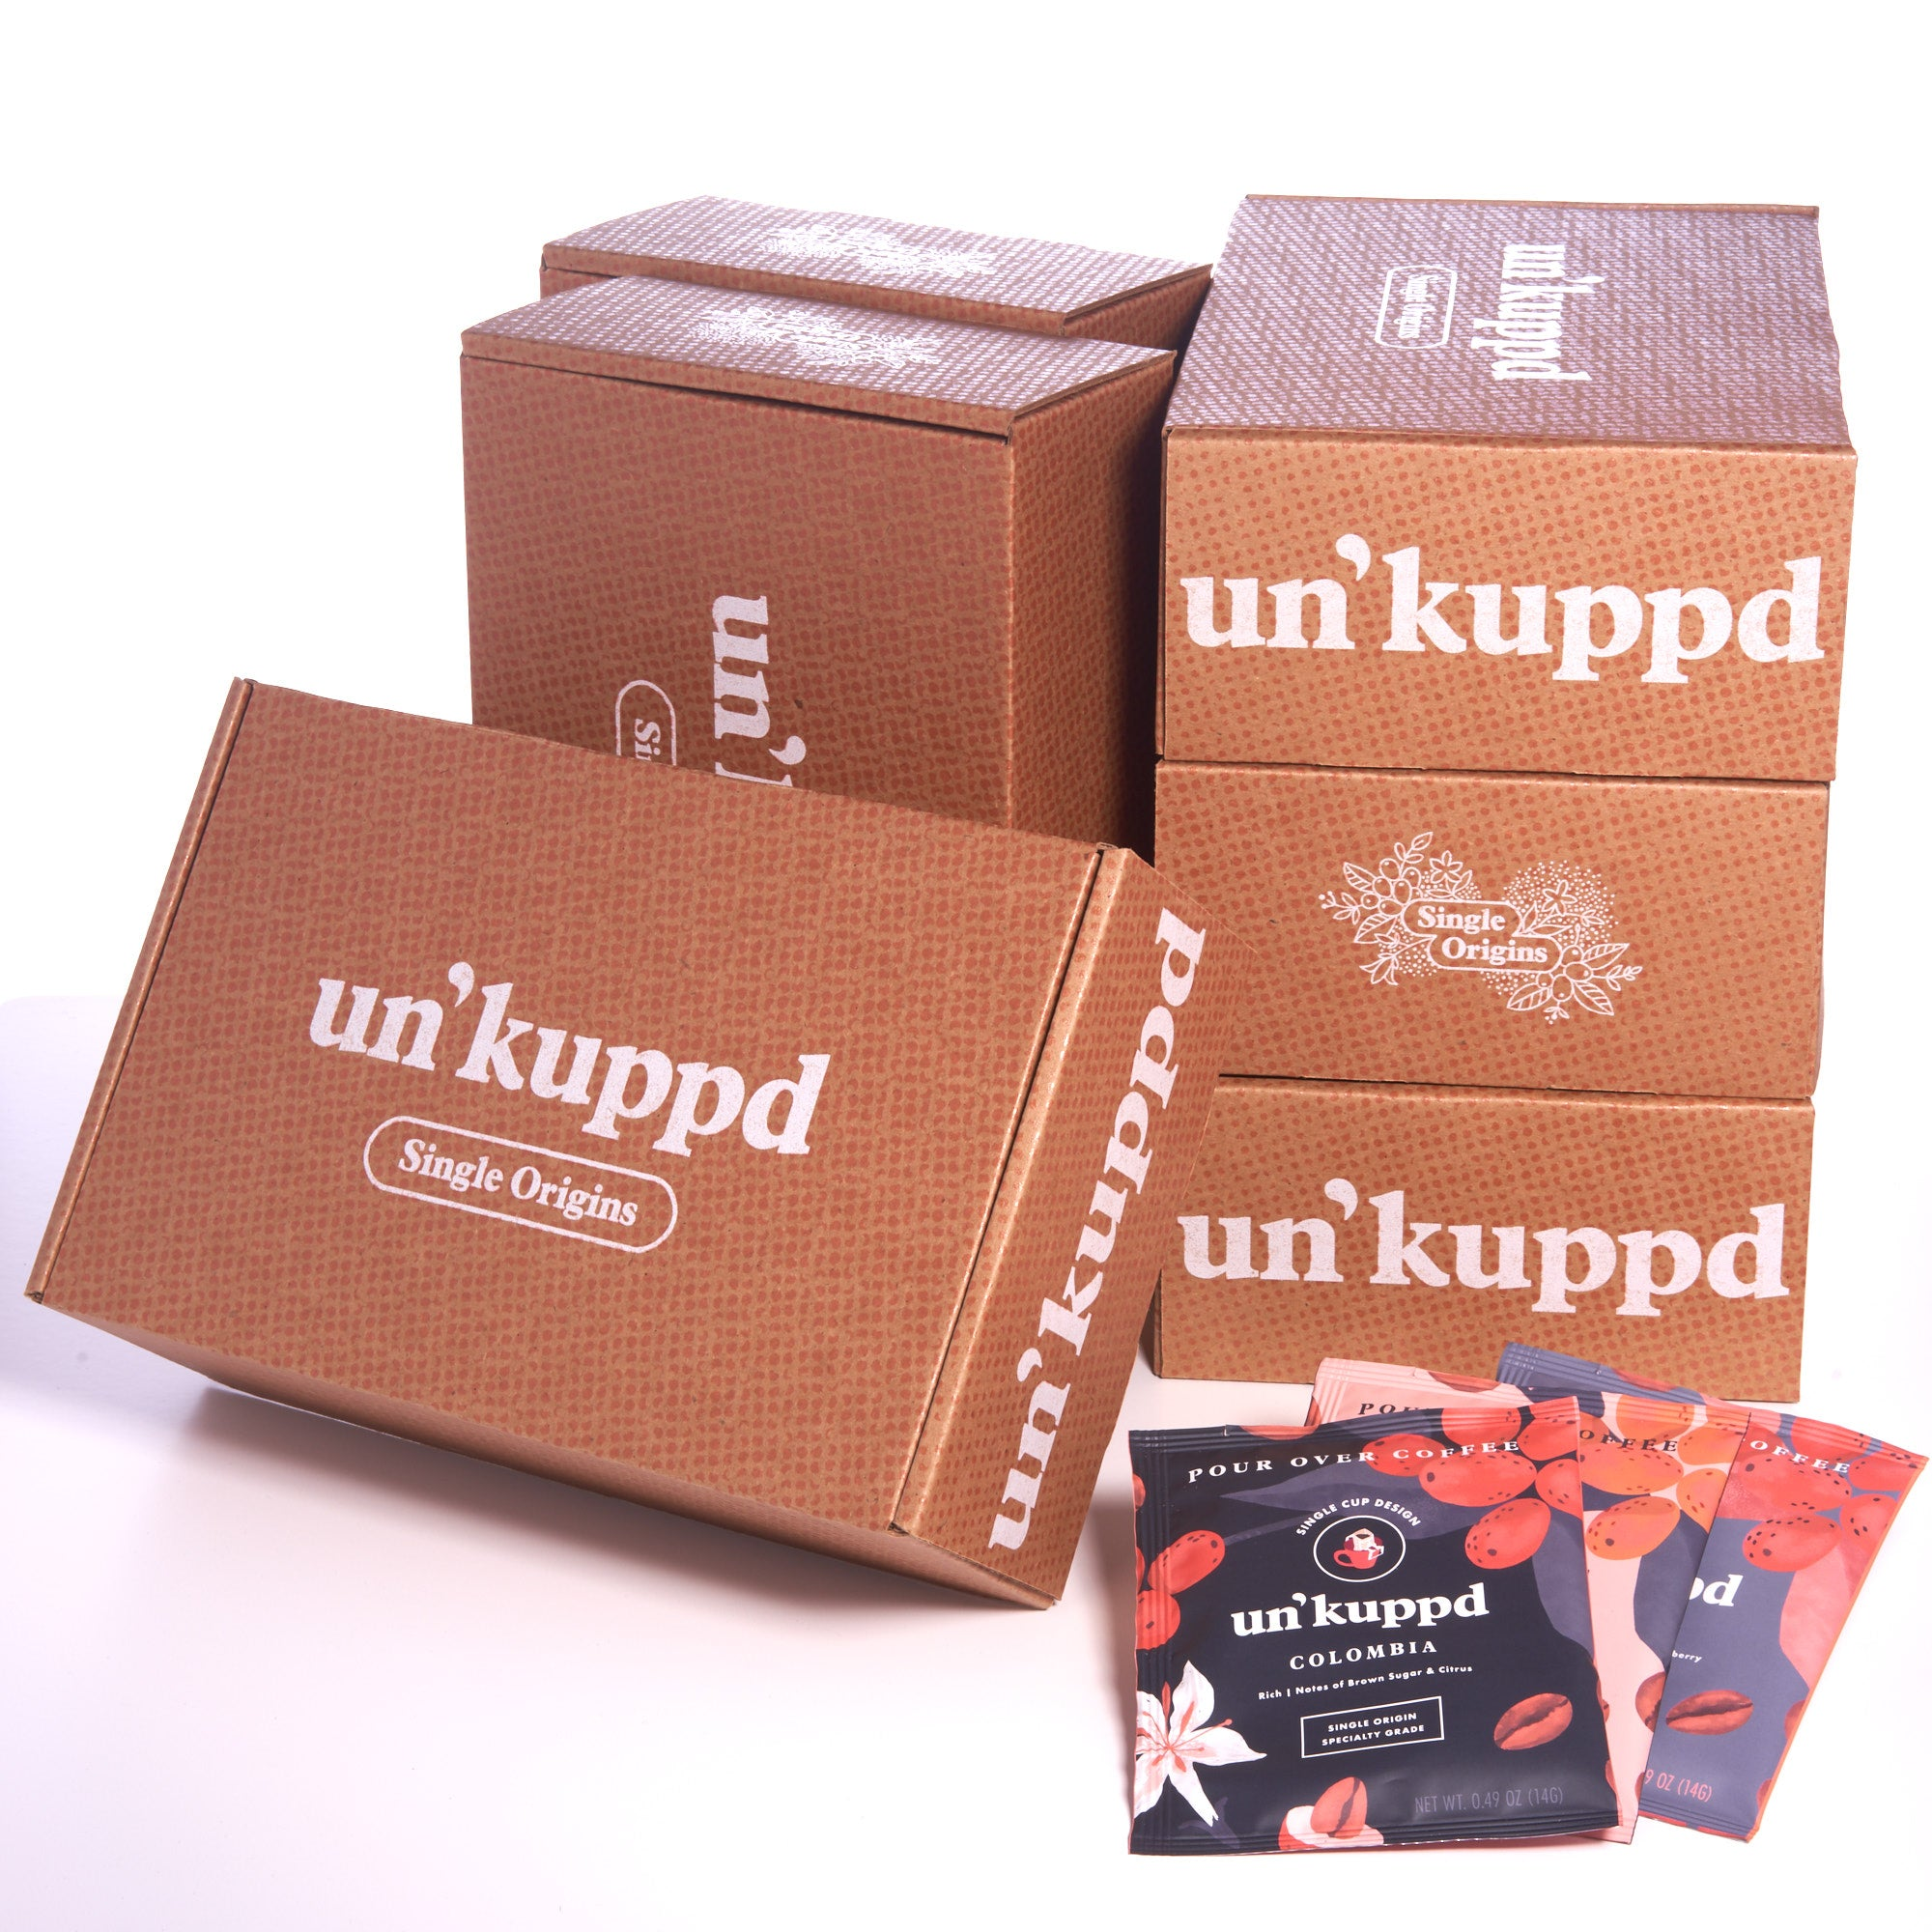 Un'kuppd Single Origins 15 Pack (6 Month Gift Subscription)